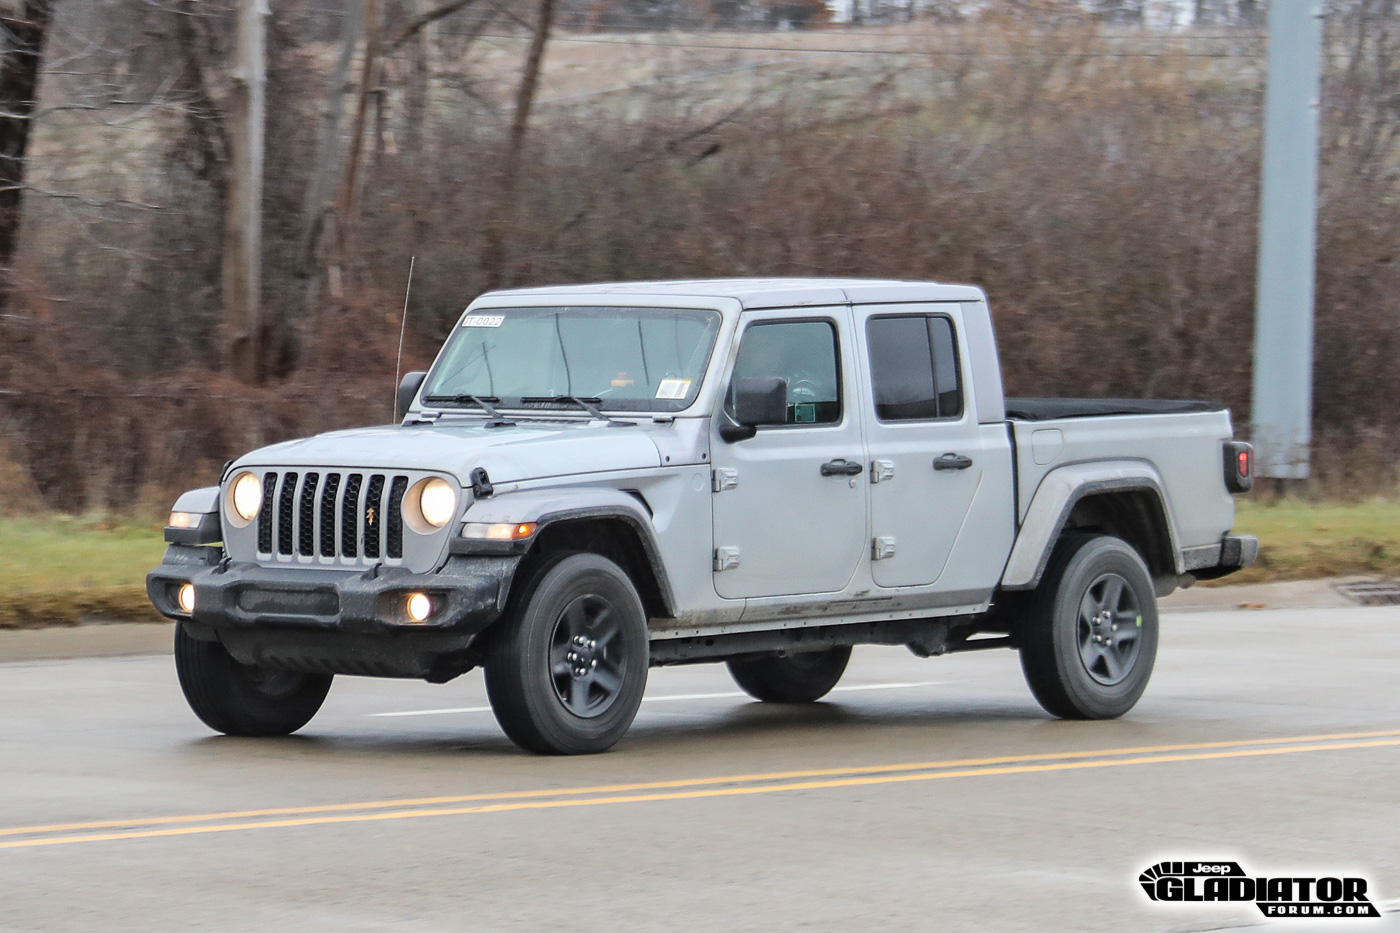 2020-Jeep-Gladiator-JT-Pickup-Truck-Spotted-Undisguised-10.jpg